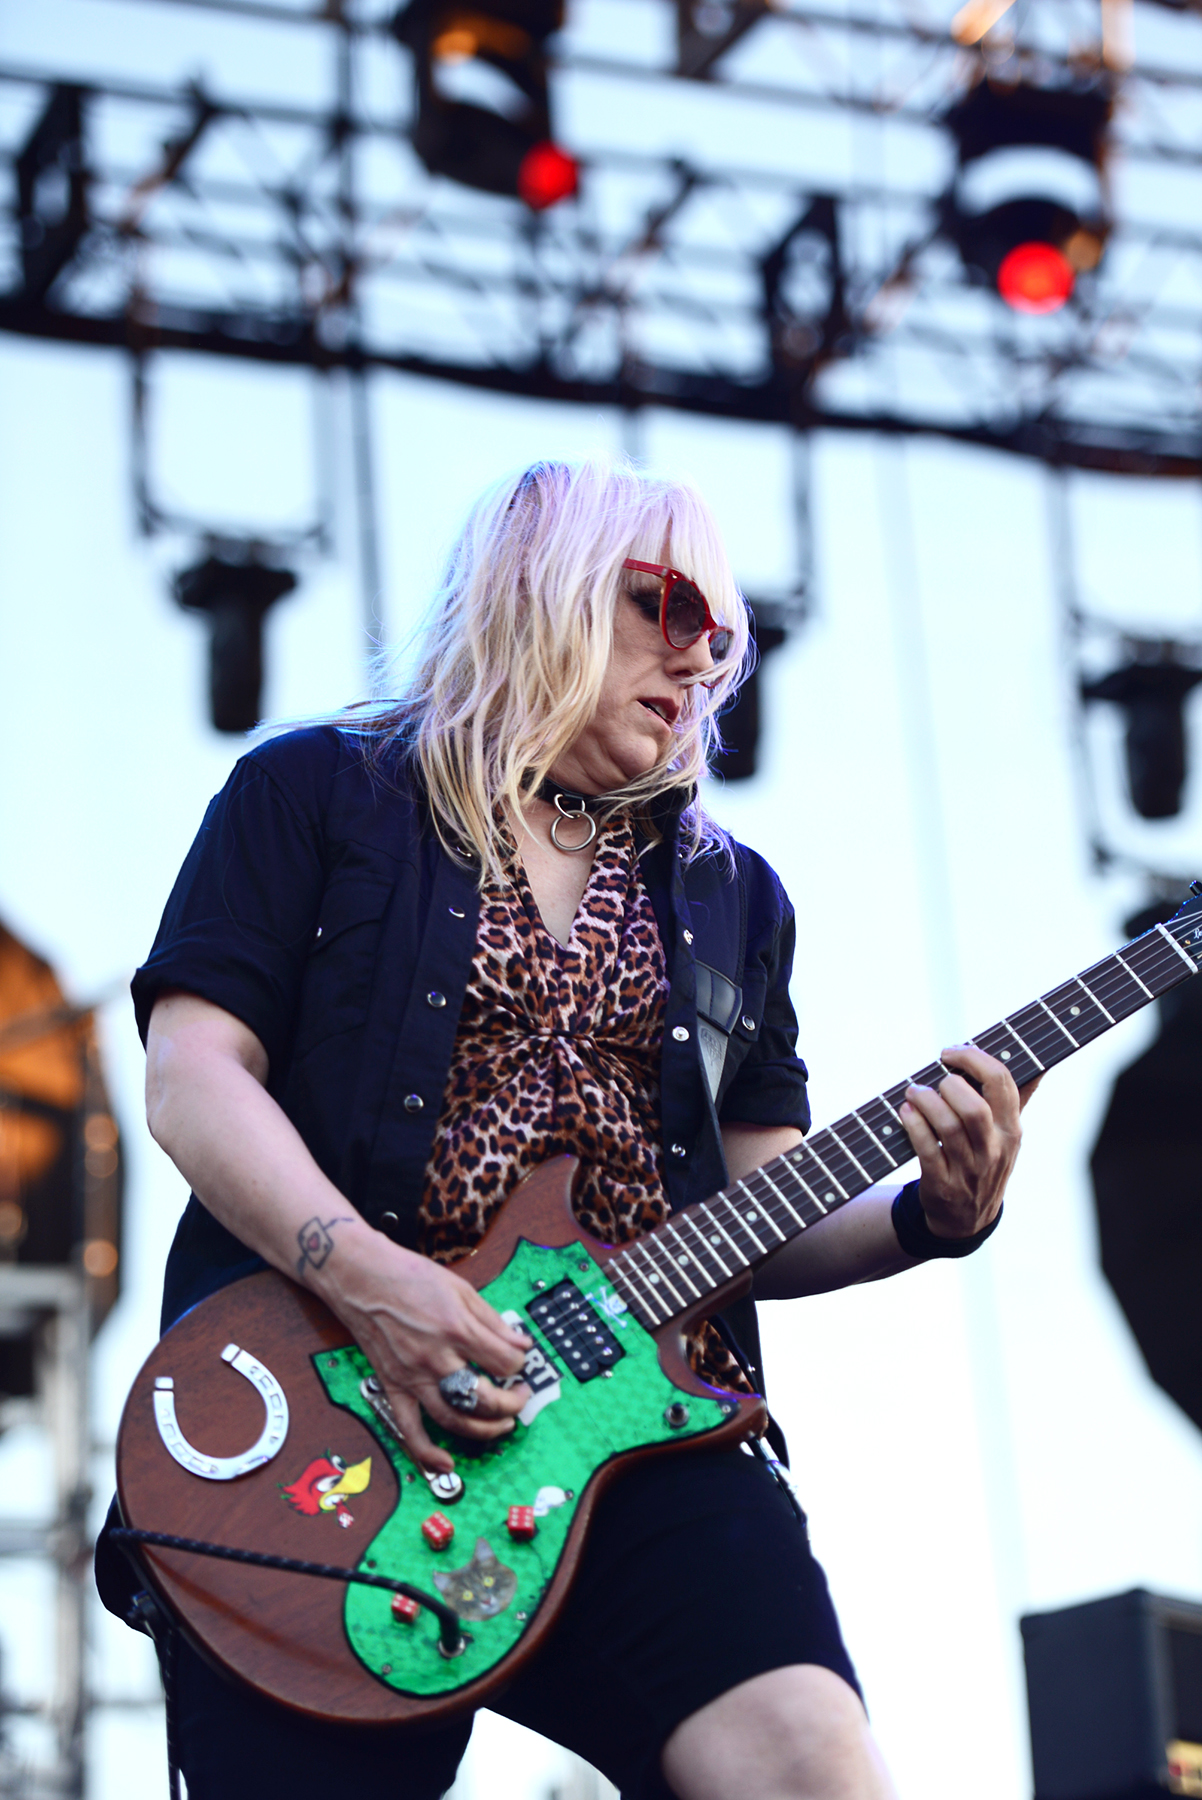 L7_riotfest_chicago_2015_4.jpg.jpg